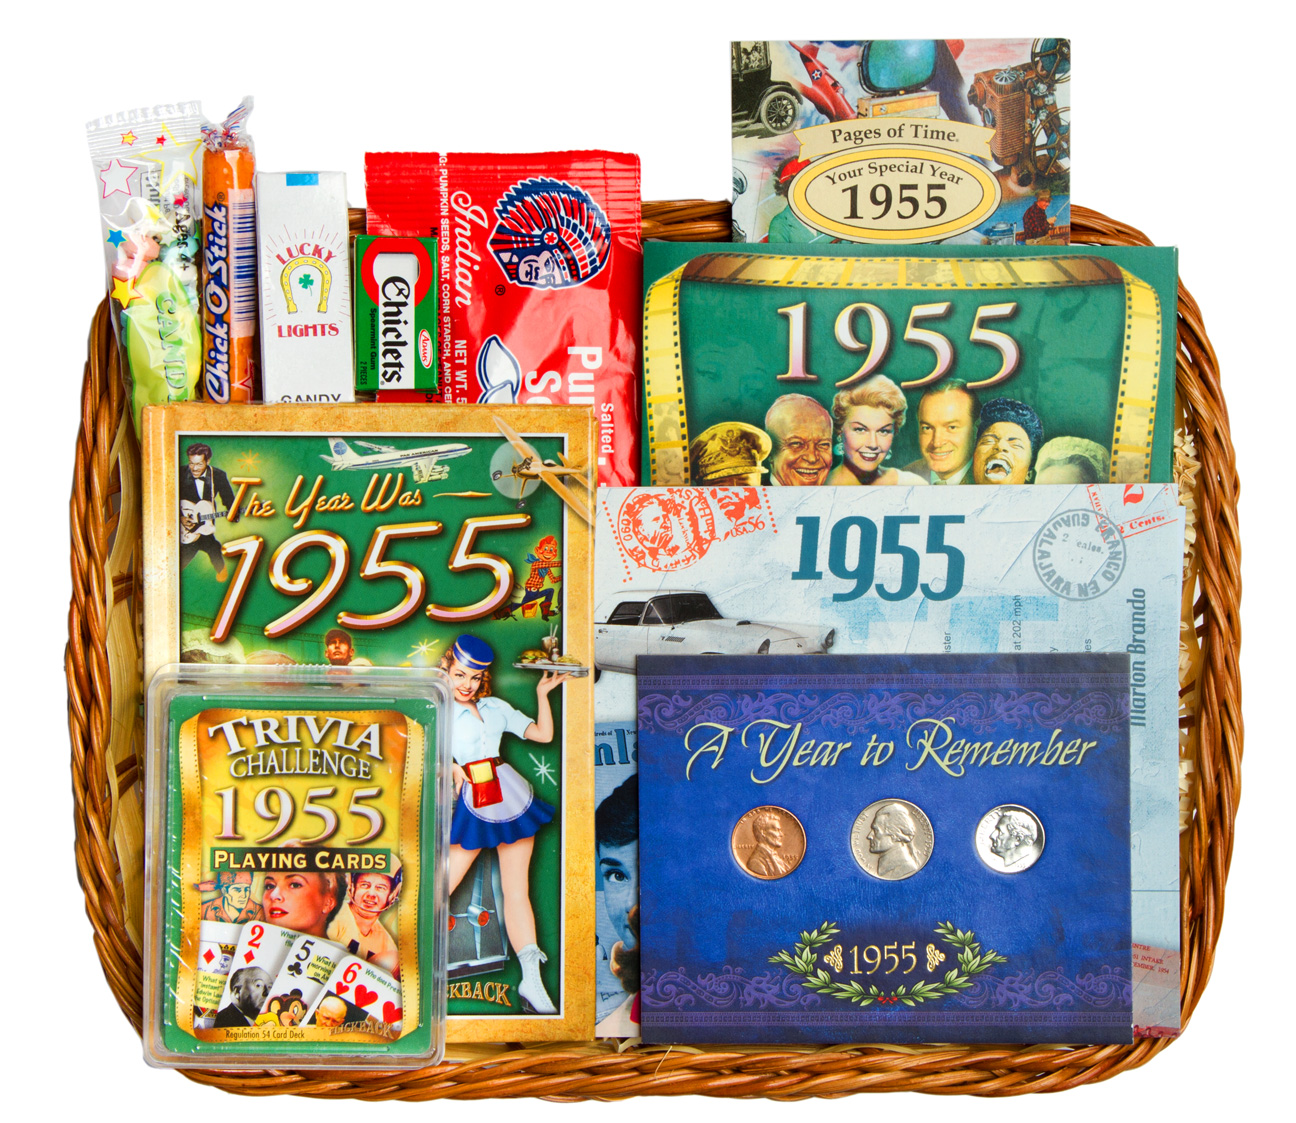 60th Wedding Anniversary Gift Basket : 60th-anniversary-gift-basket-60th-birthday-gift-basket-33.jpg